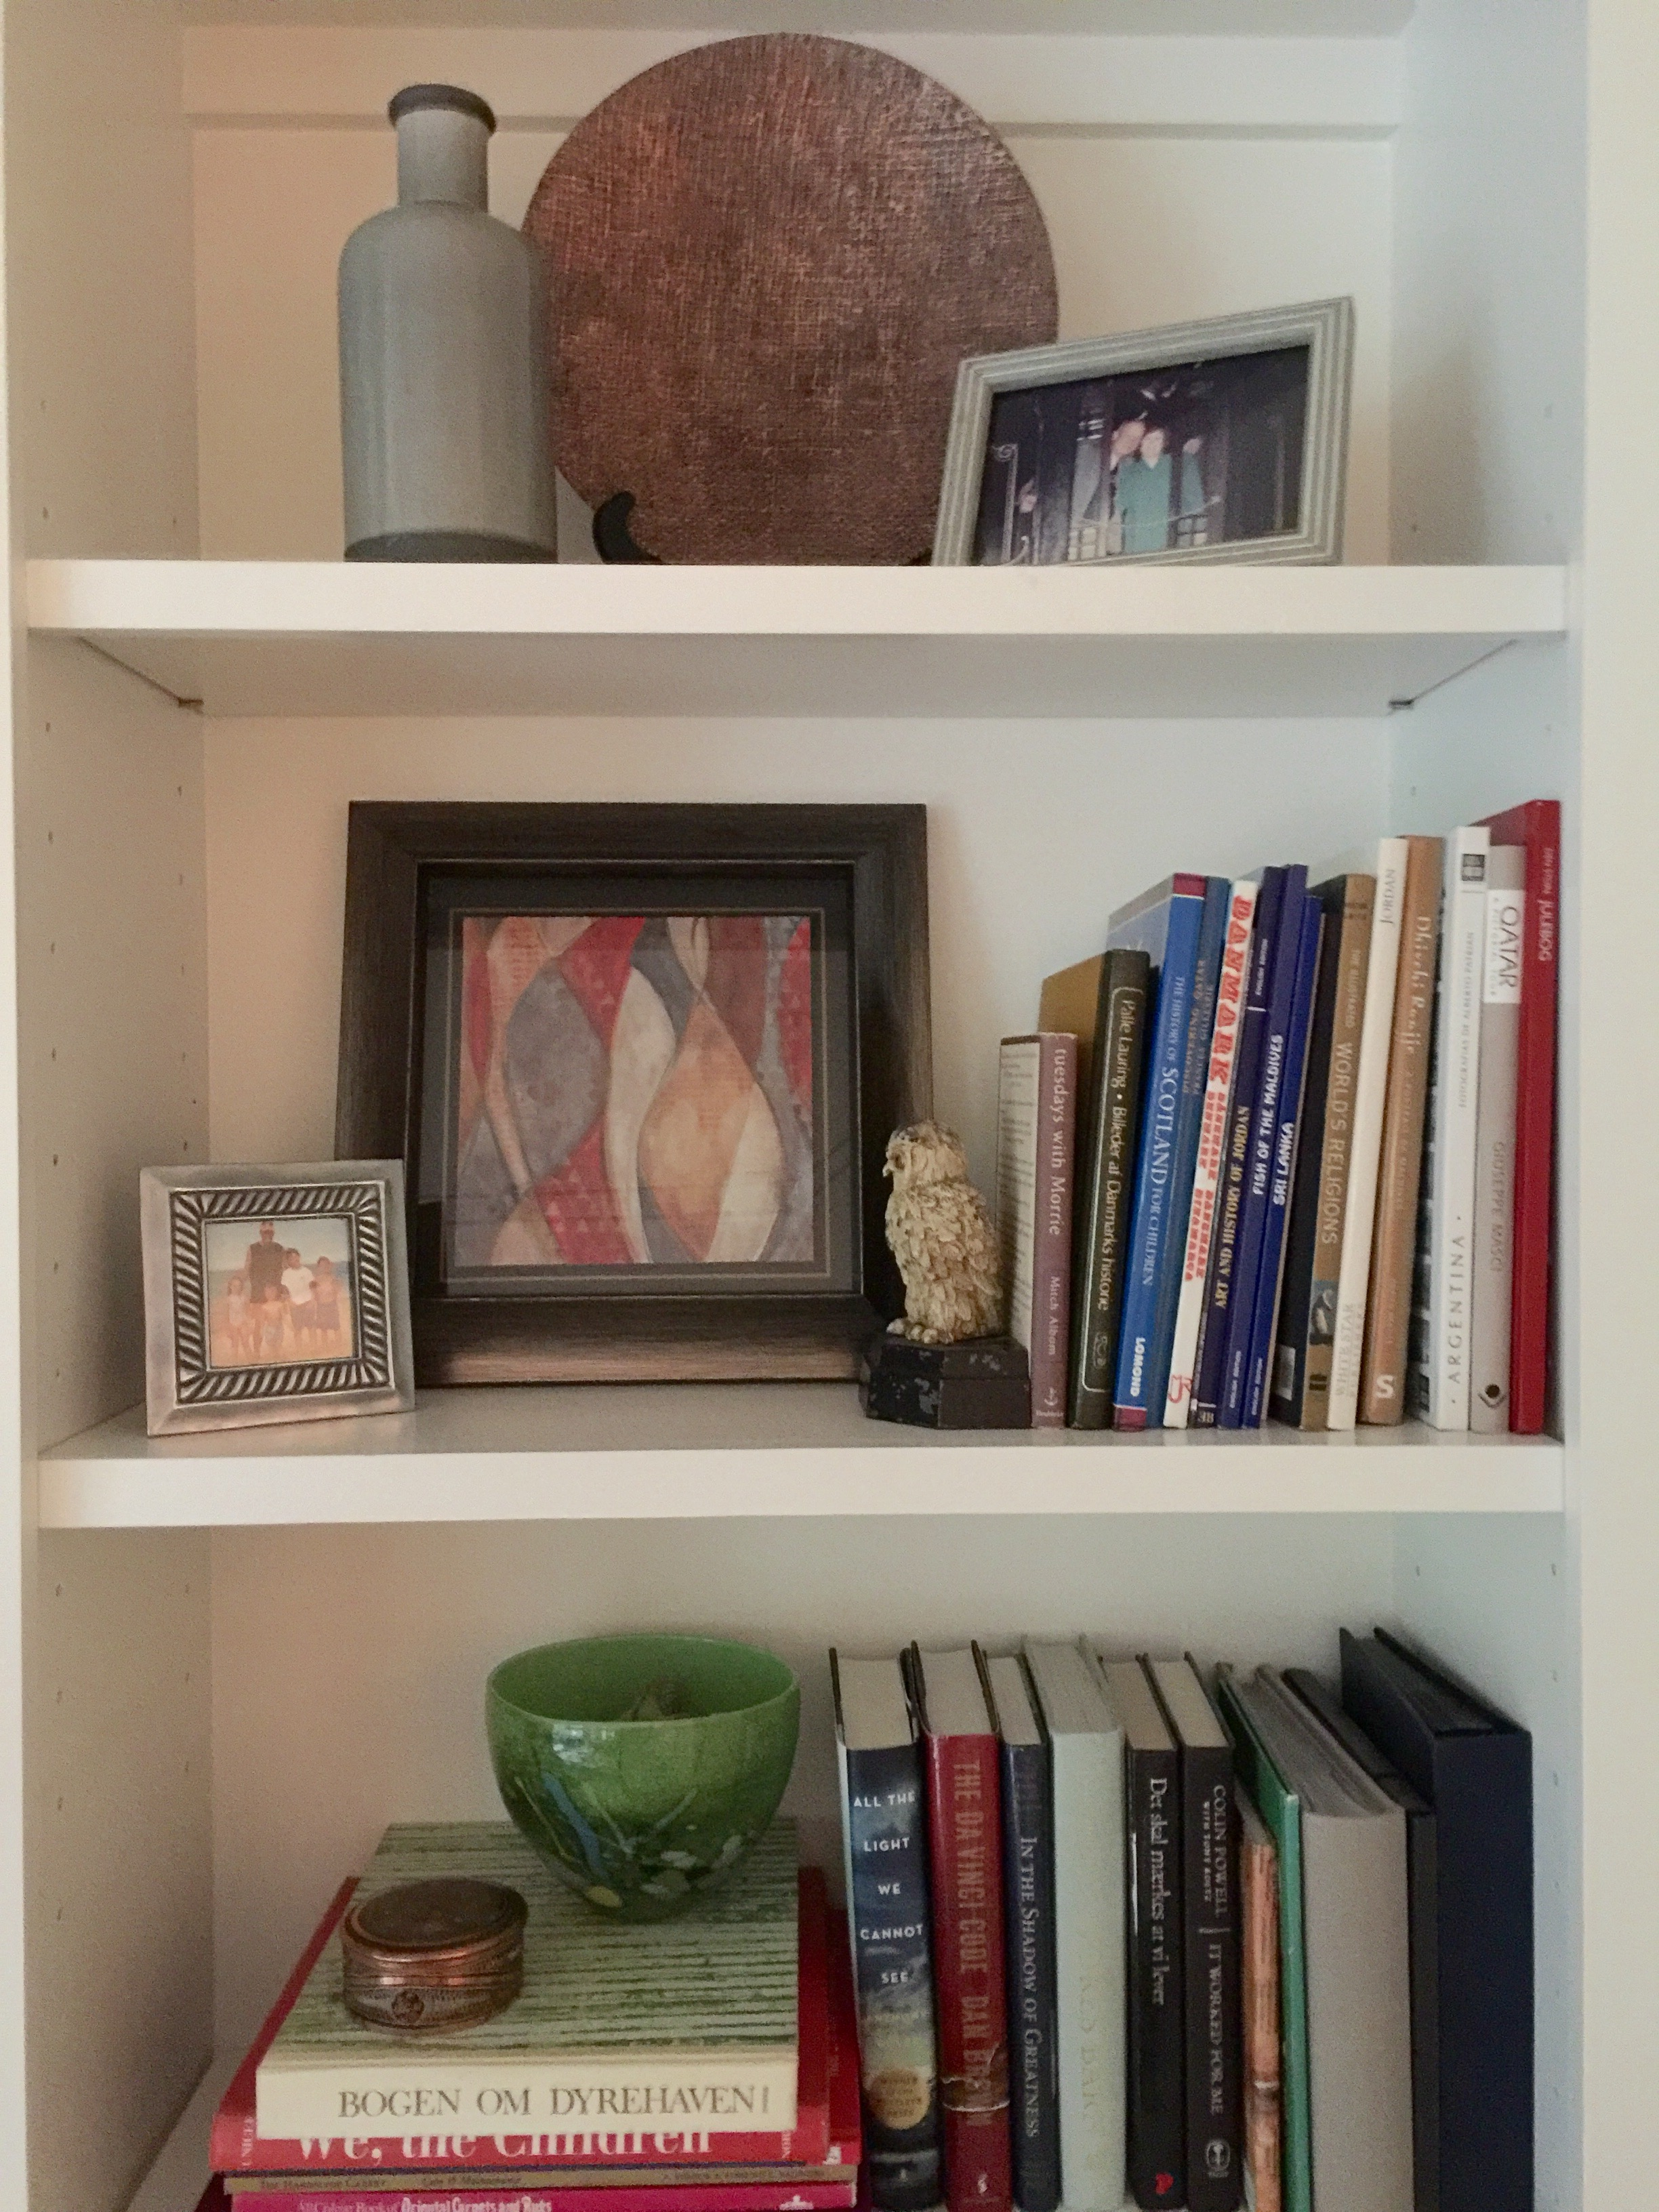 Bookshelf styling - the gray vase, copper toned plate, and modern art piece were from At Home and filled in nicely amongst the homeowner's books and collectibles.